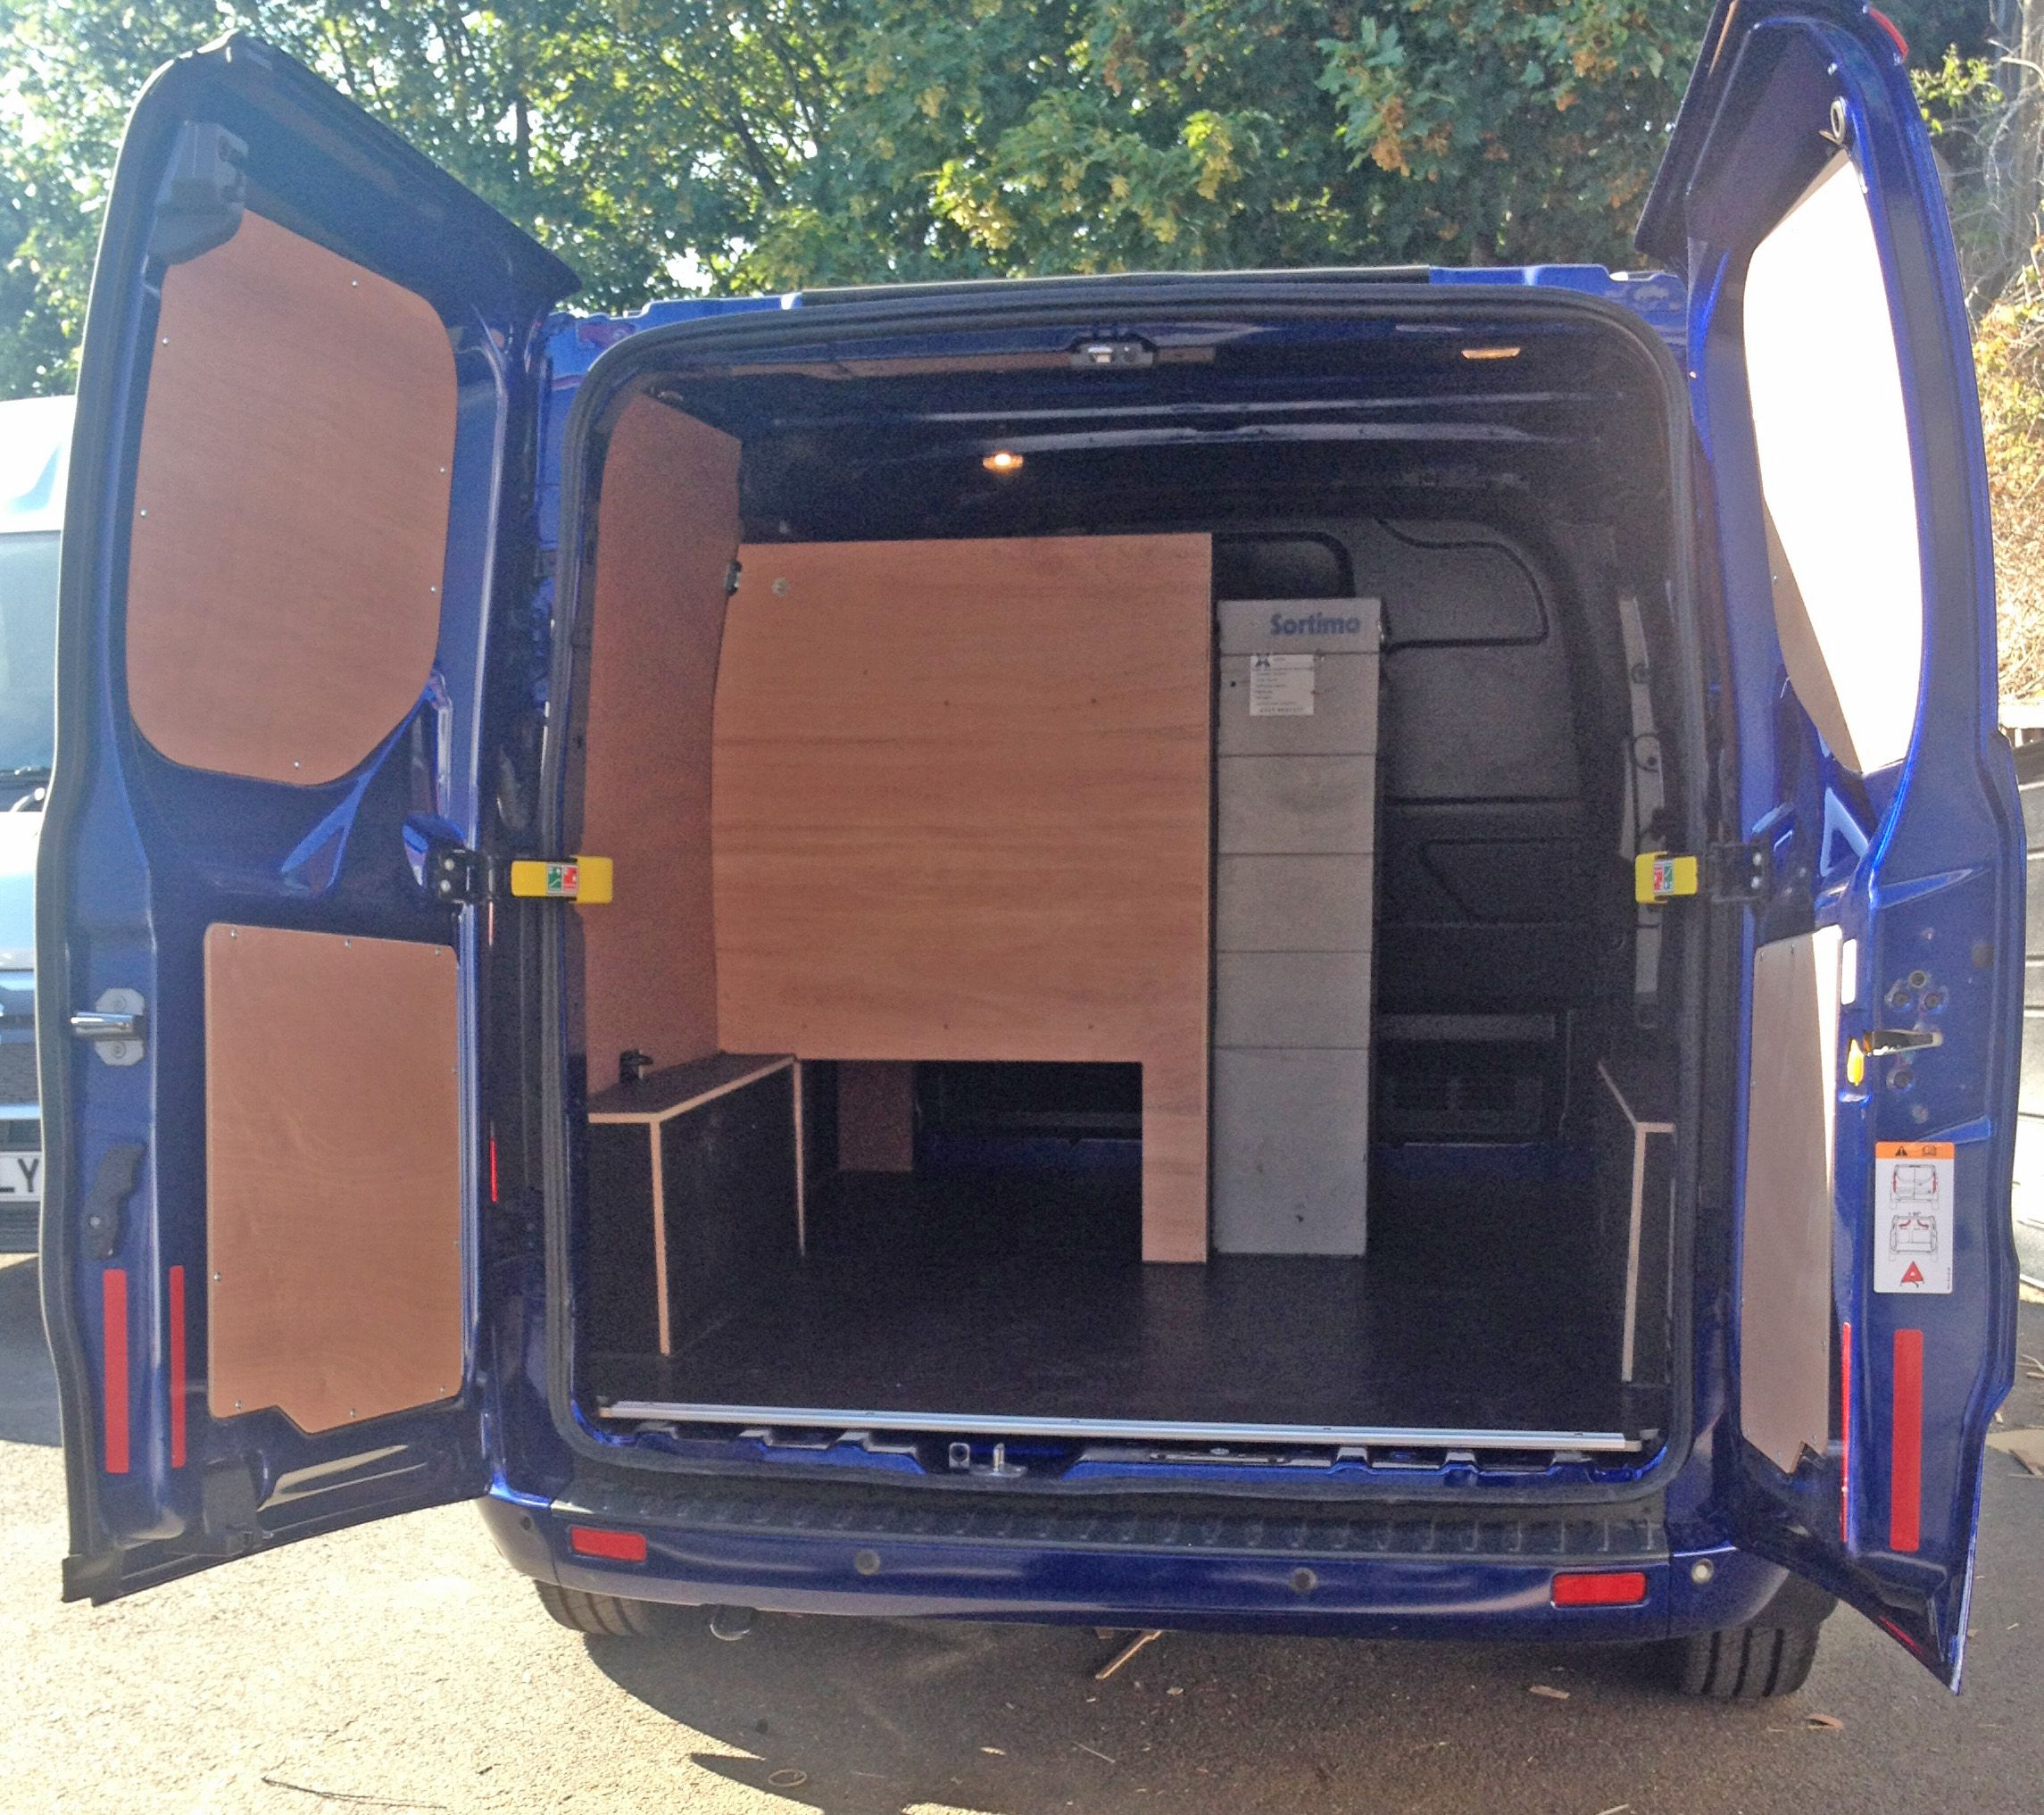 Ply-lining and custom racking, installed into a Ford Transit Custom. If you need something specific for your vehicle, including racking we can offer you a bespoke service, cutting the kit to your needs. Visit us at www.vehicle-accessories.net.